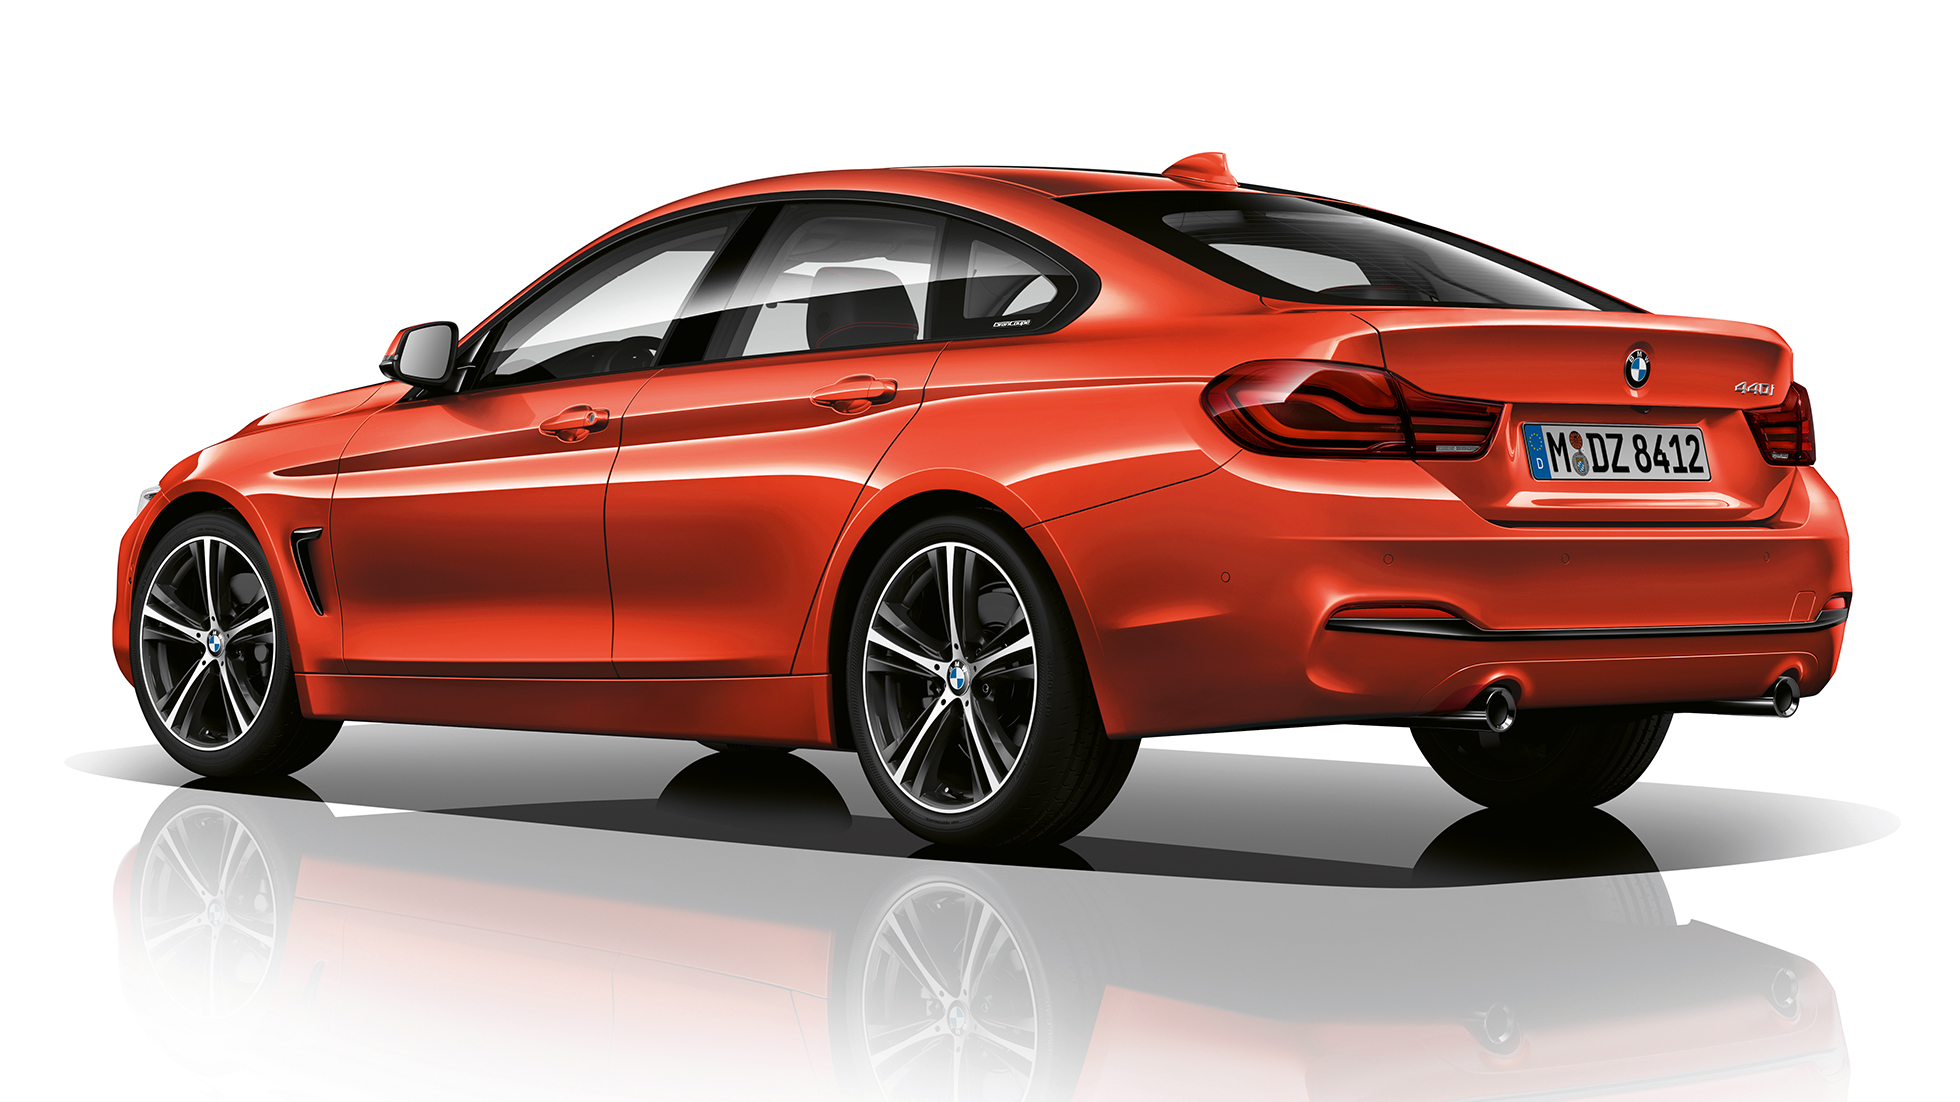 BMW 4 Series Gran Coupé, Model Sport Line three-quarter rear shot